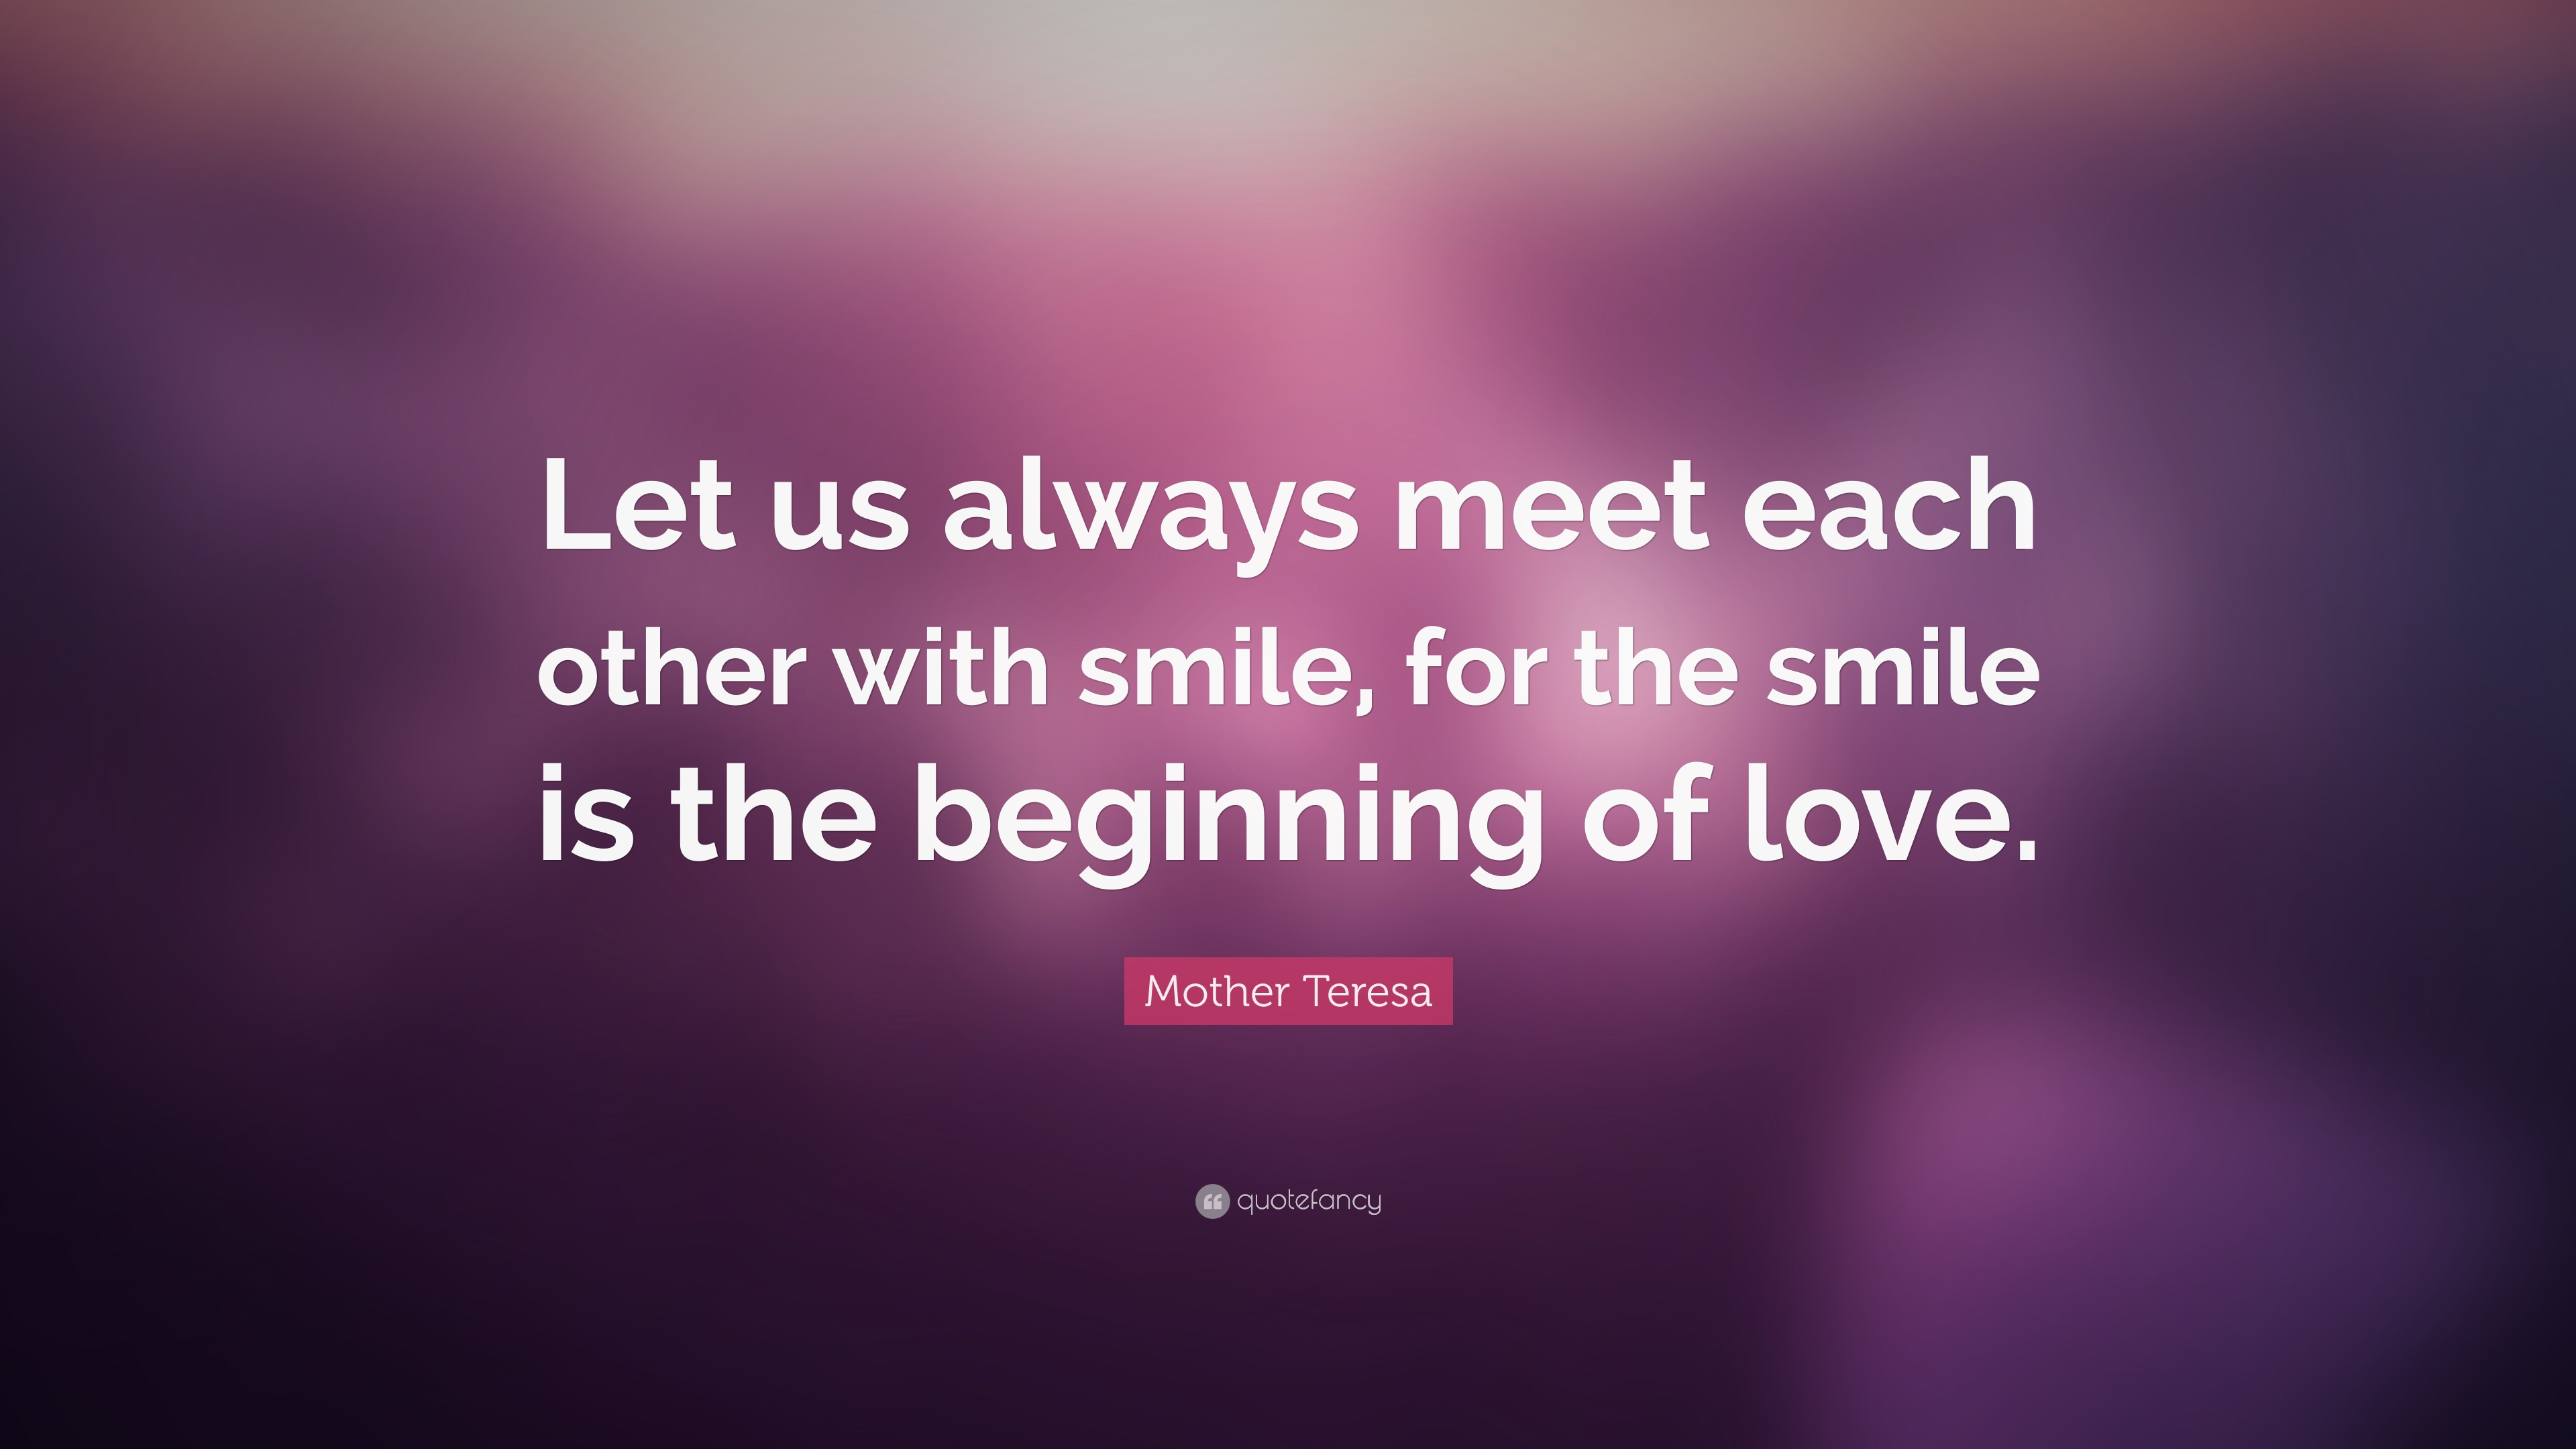 Smile Quotes (40 wallpapers) - Quotefancy for Always Smile Quotes Images  70ref